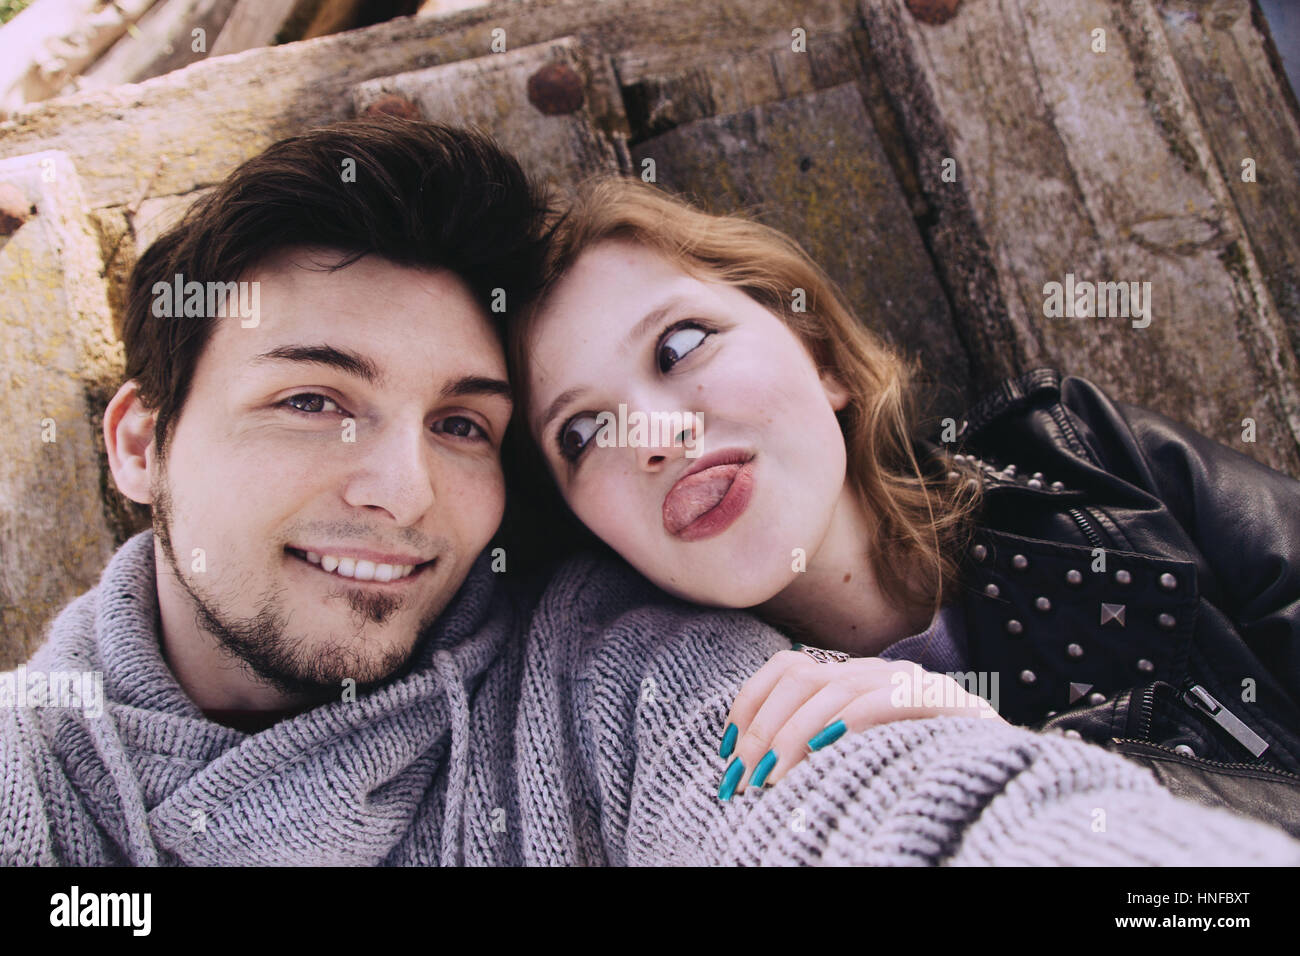 Young couple having fun and great moments together - Stock Image